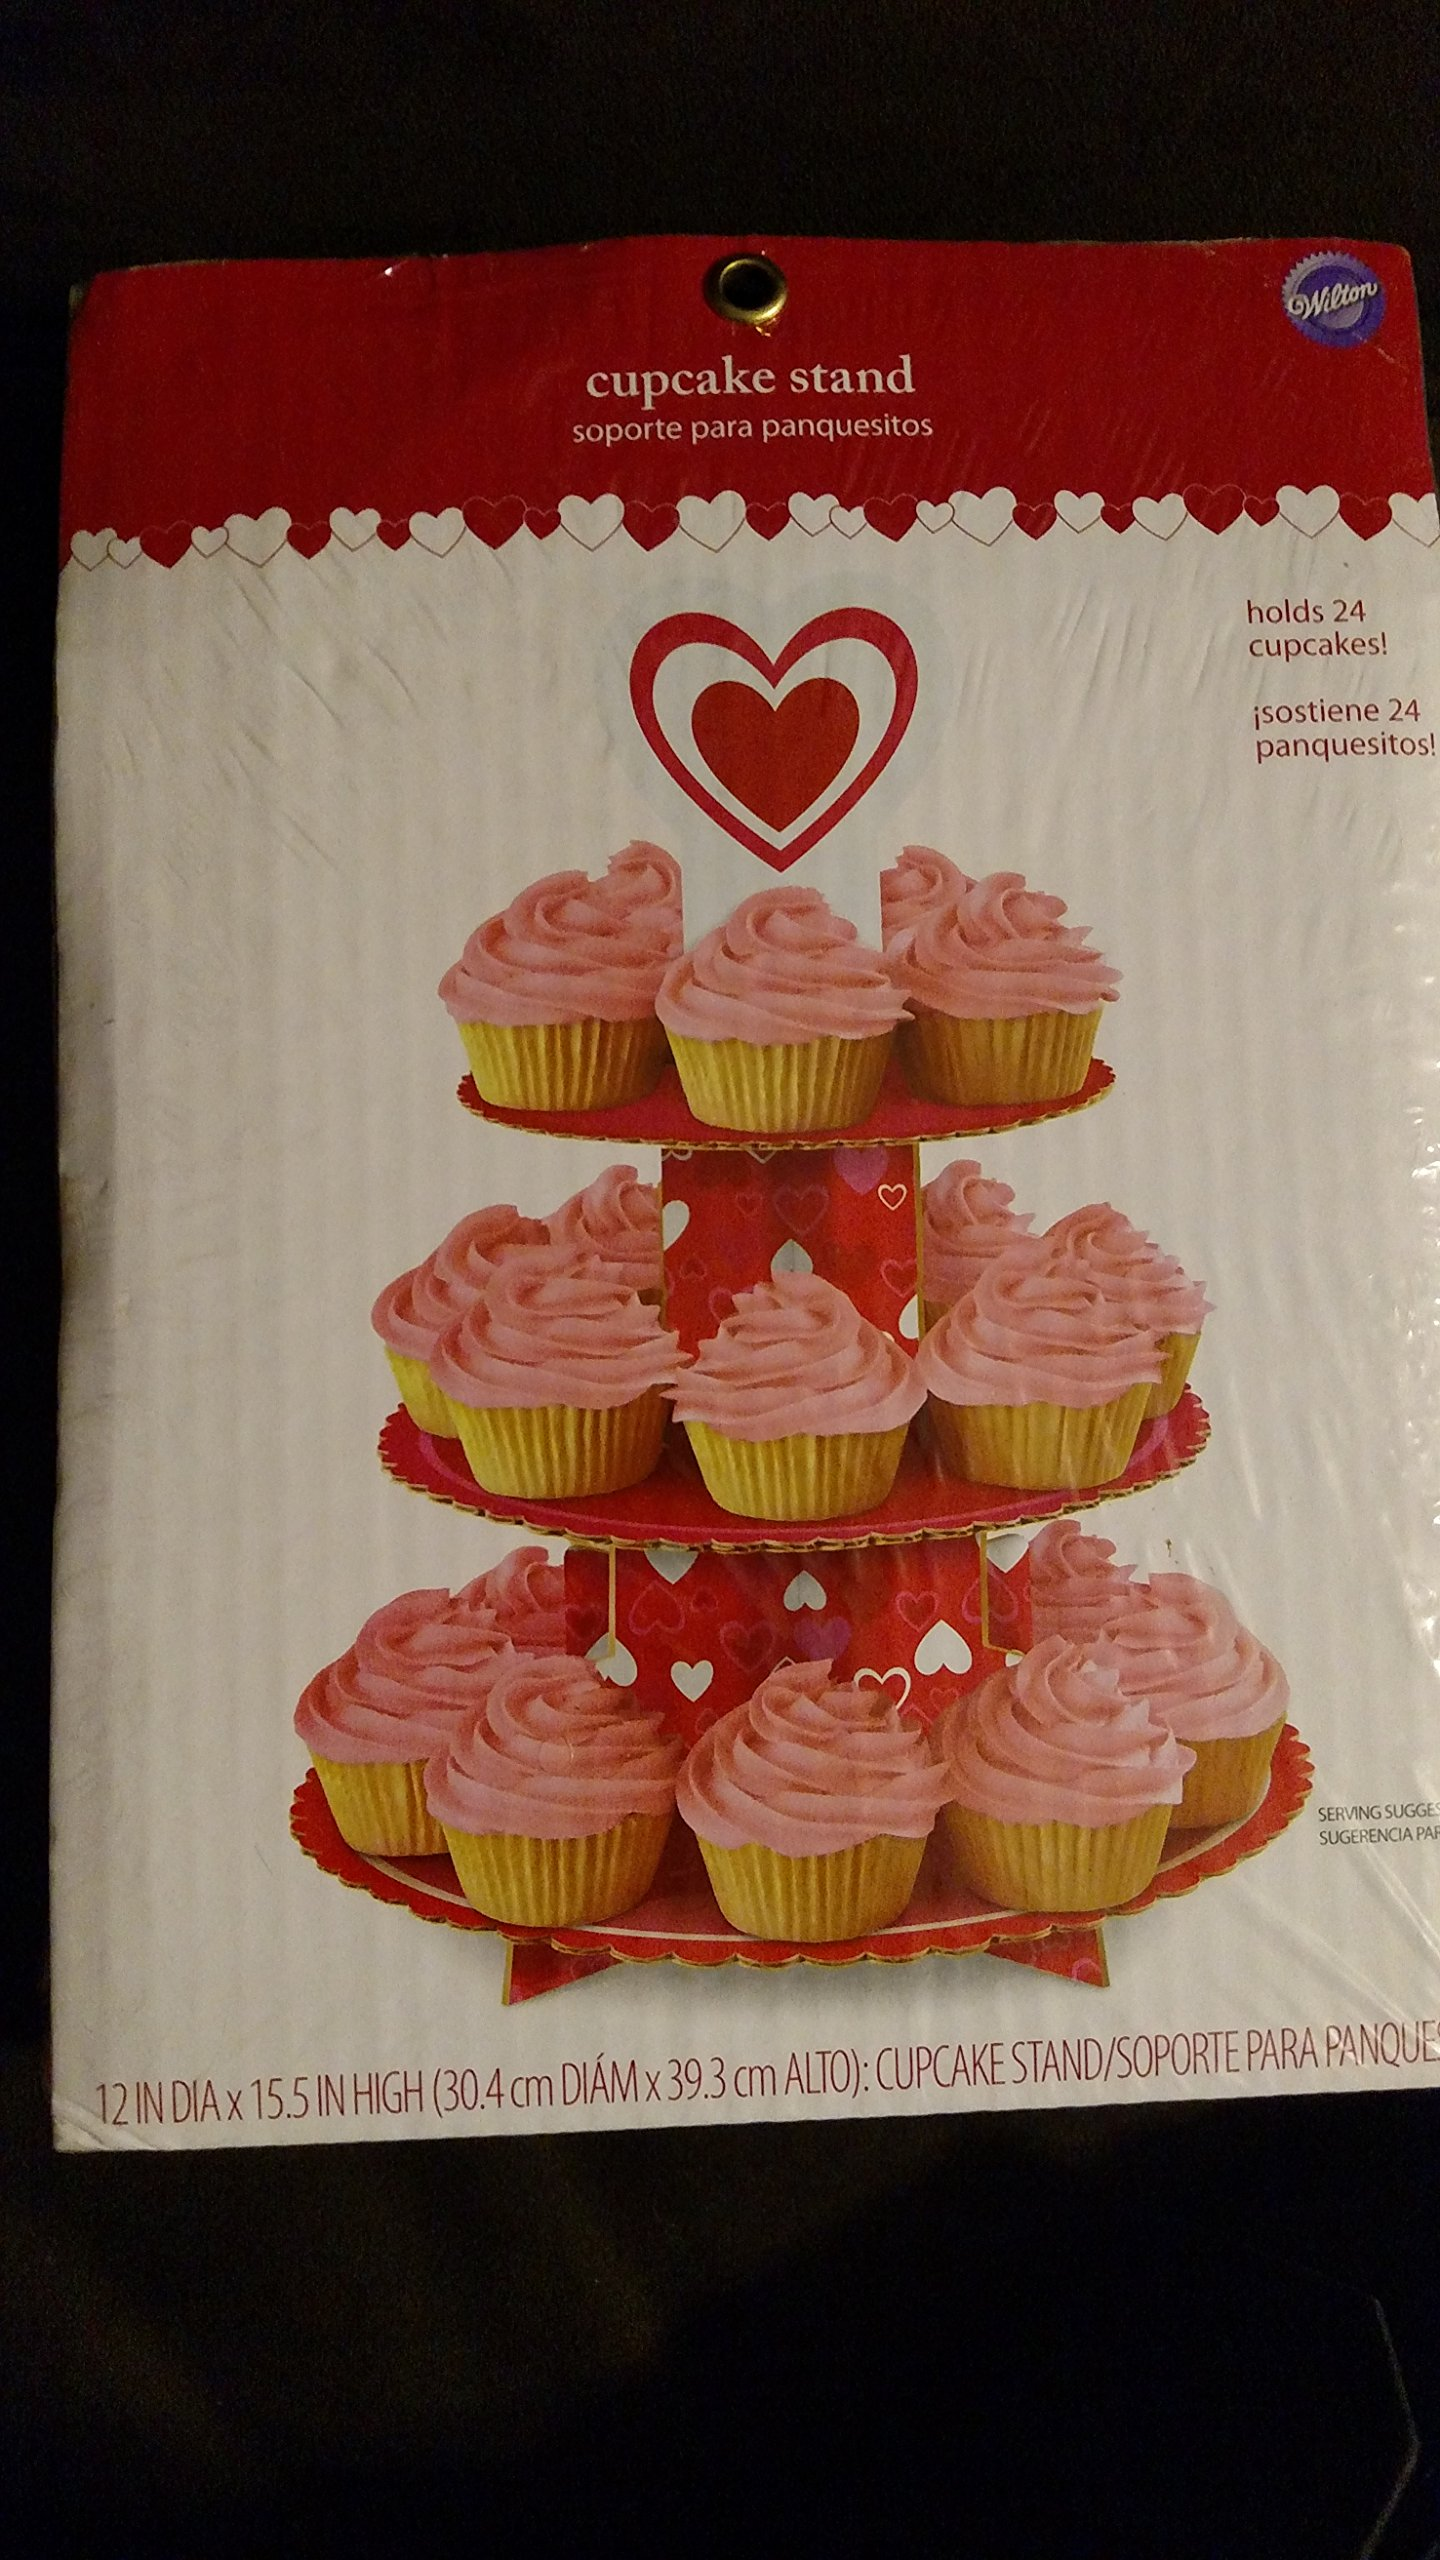 Wilton Heart Cupcake Stand - Holds 24 Cupcakes!